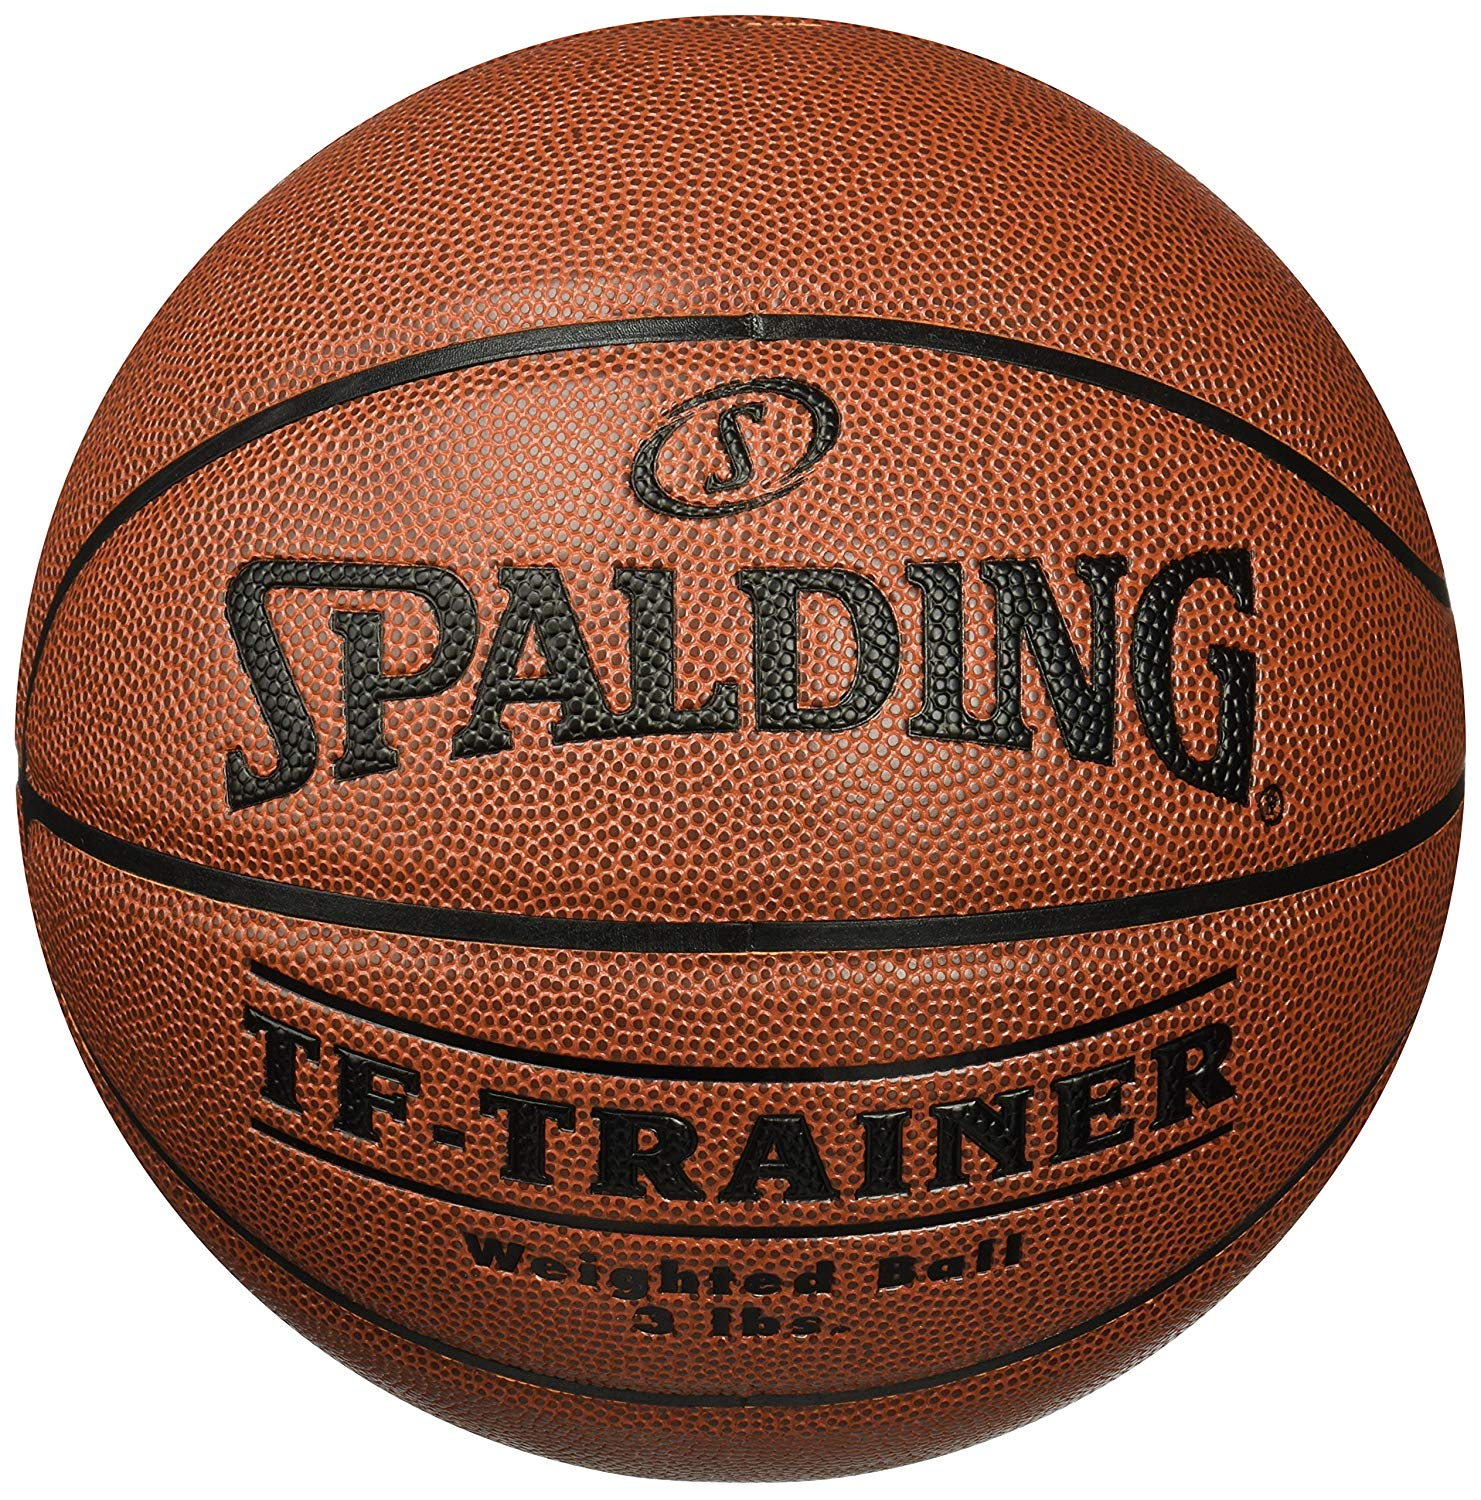 Weighted Basketball Trainer